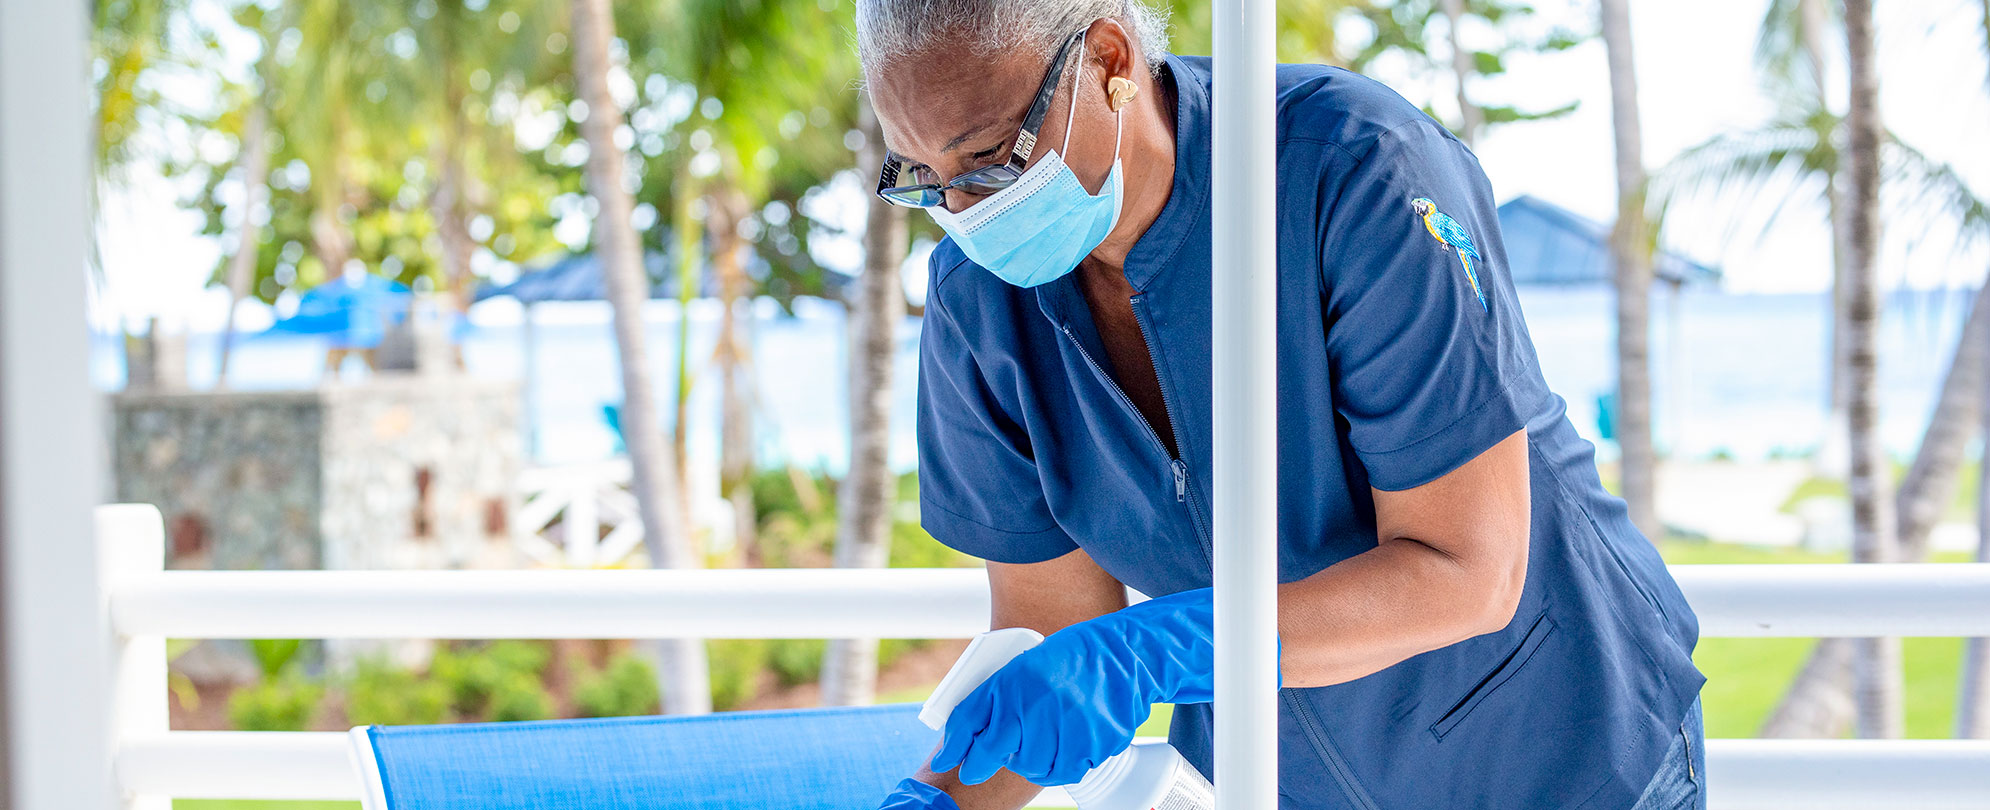 A Margaritaville Vacation Club housekeeper sanitizing outdoor seating.